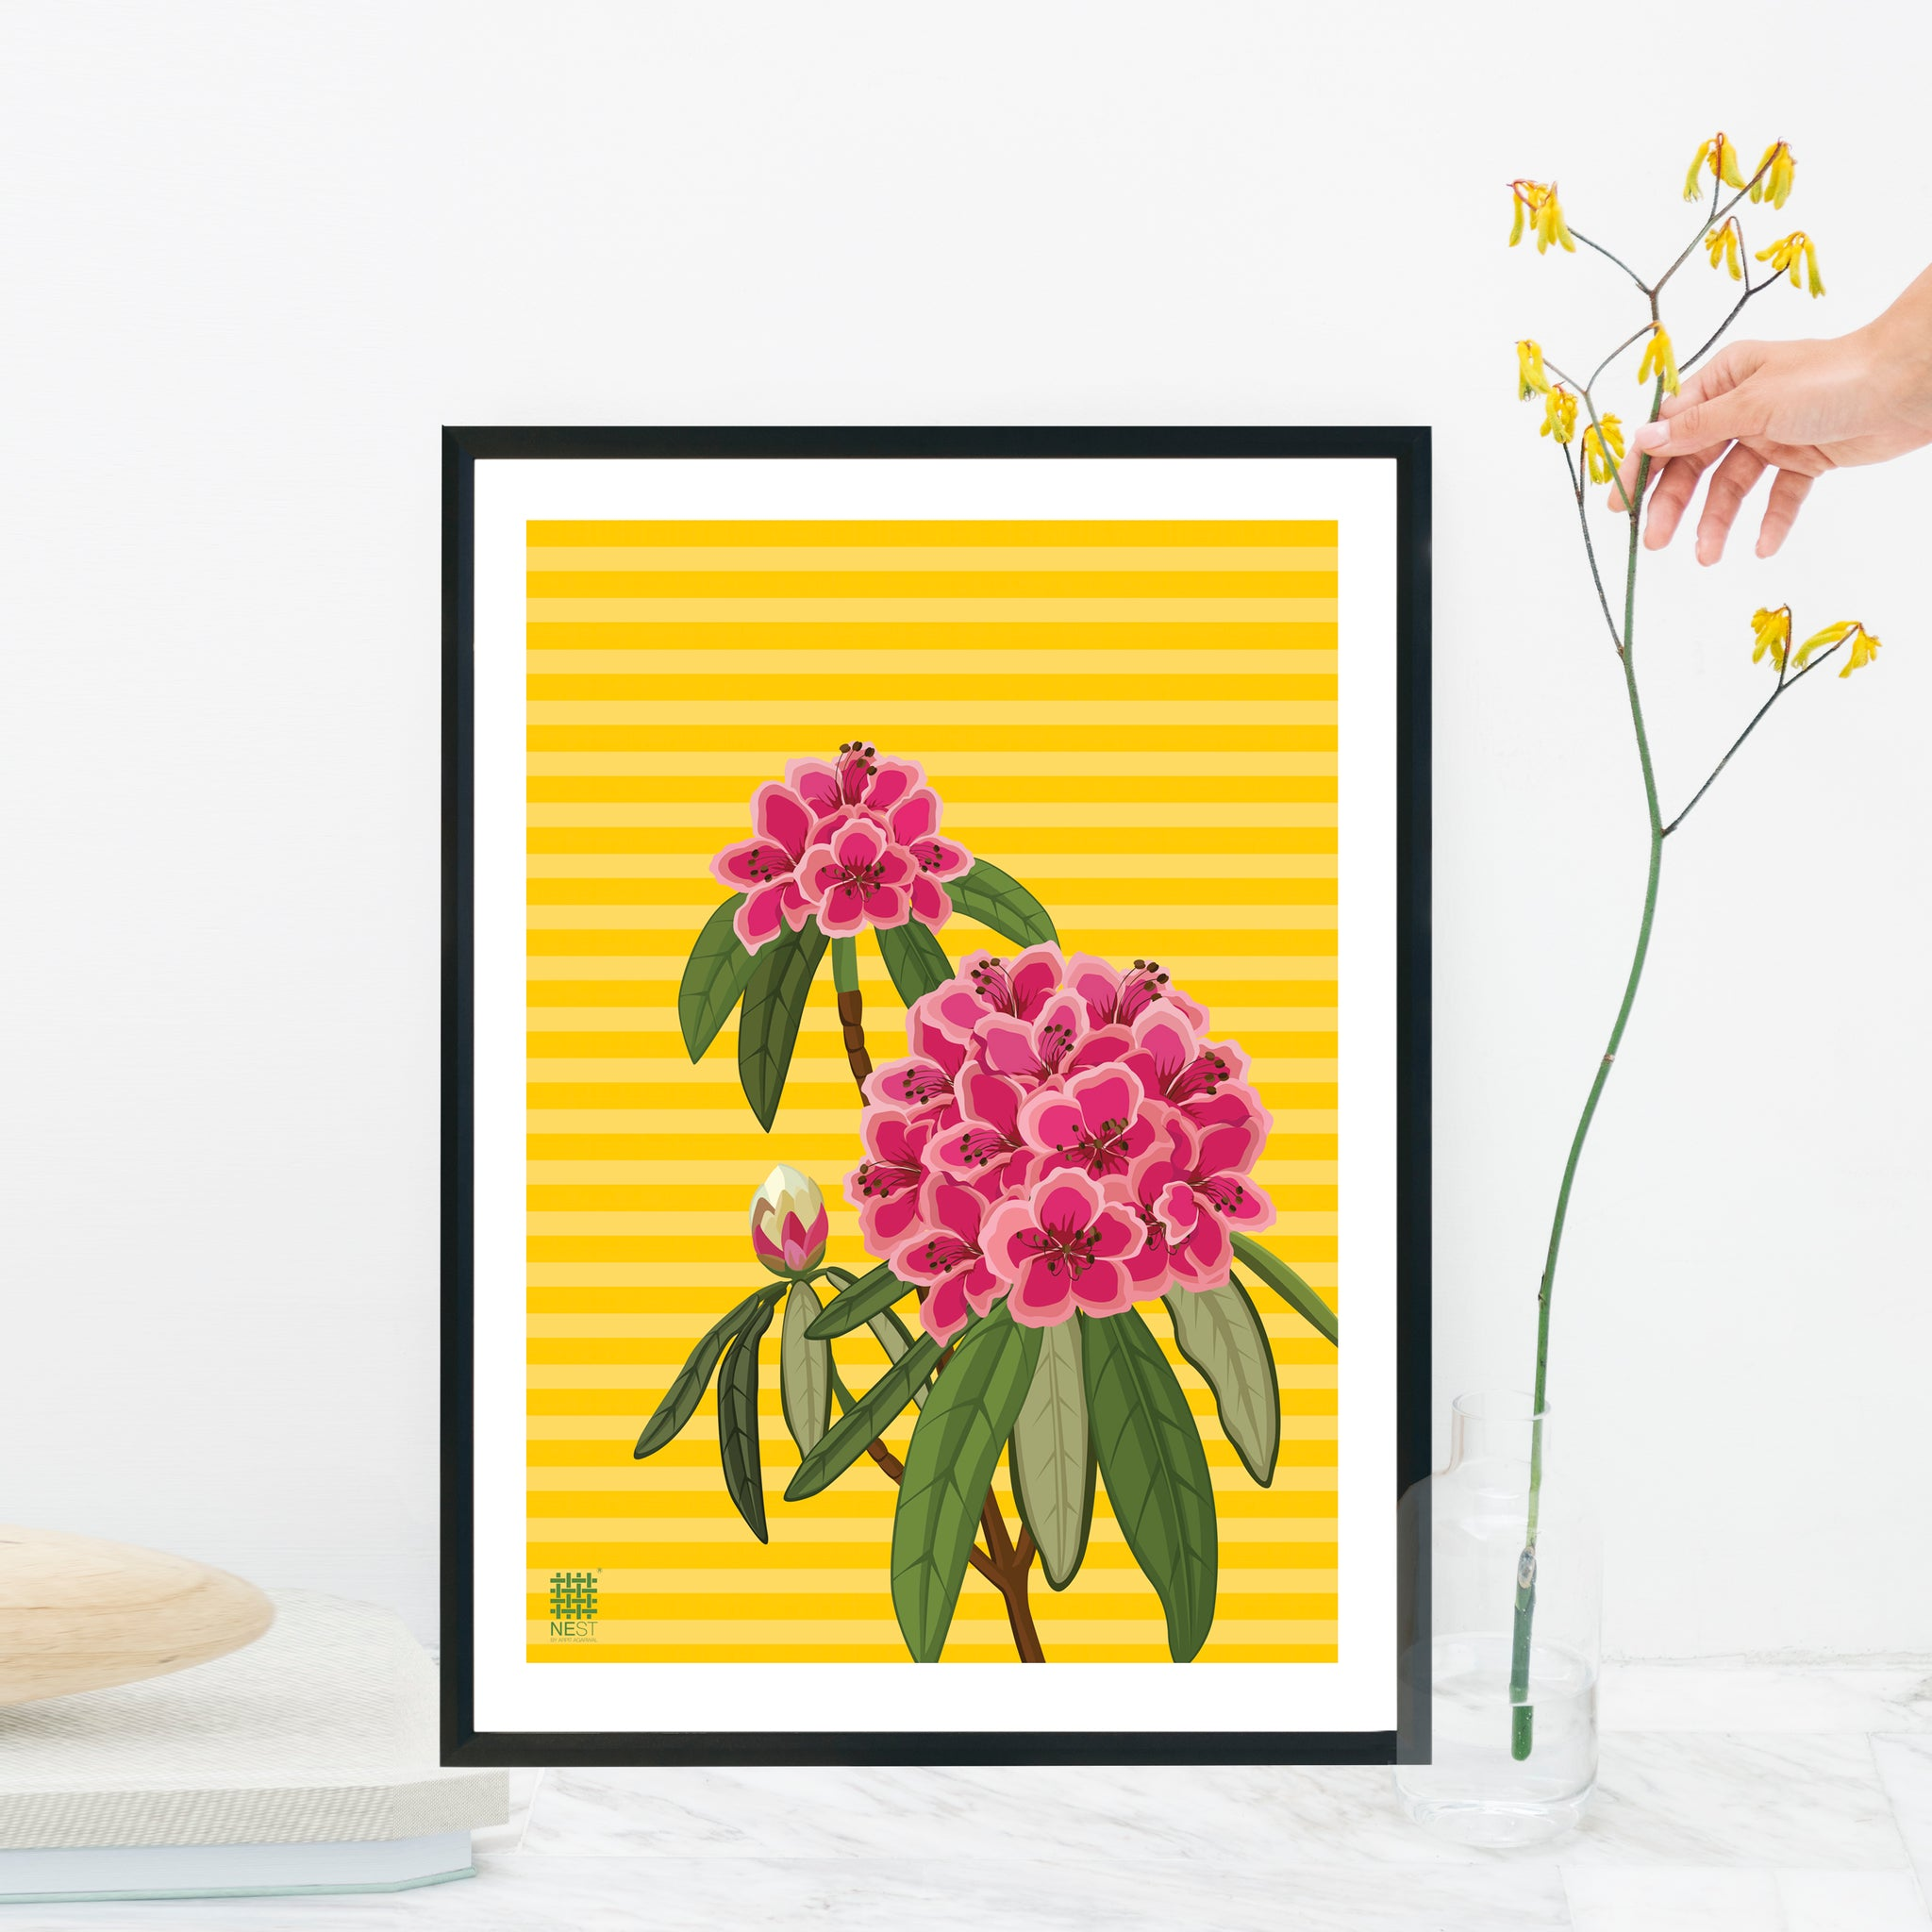 Rhododendron Yellow - Print Only - NEST by Arpit Agarwal